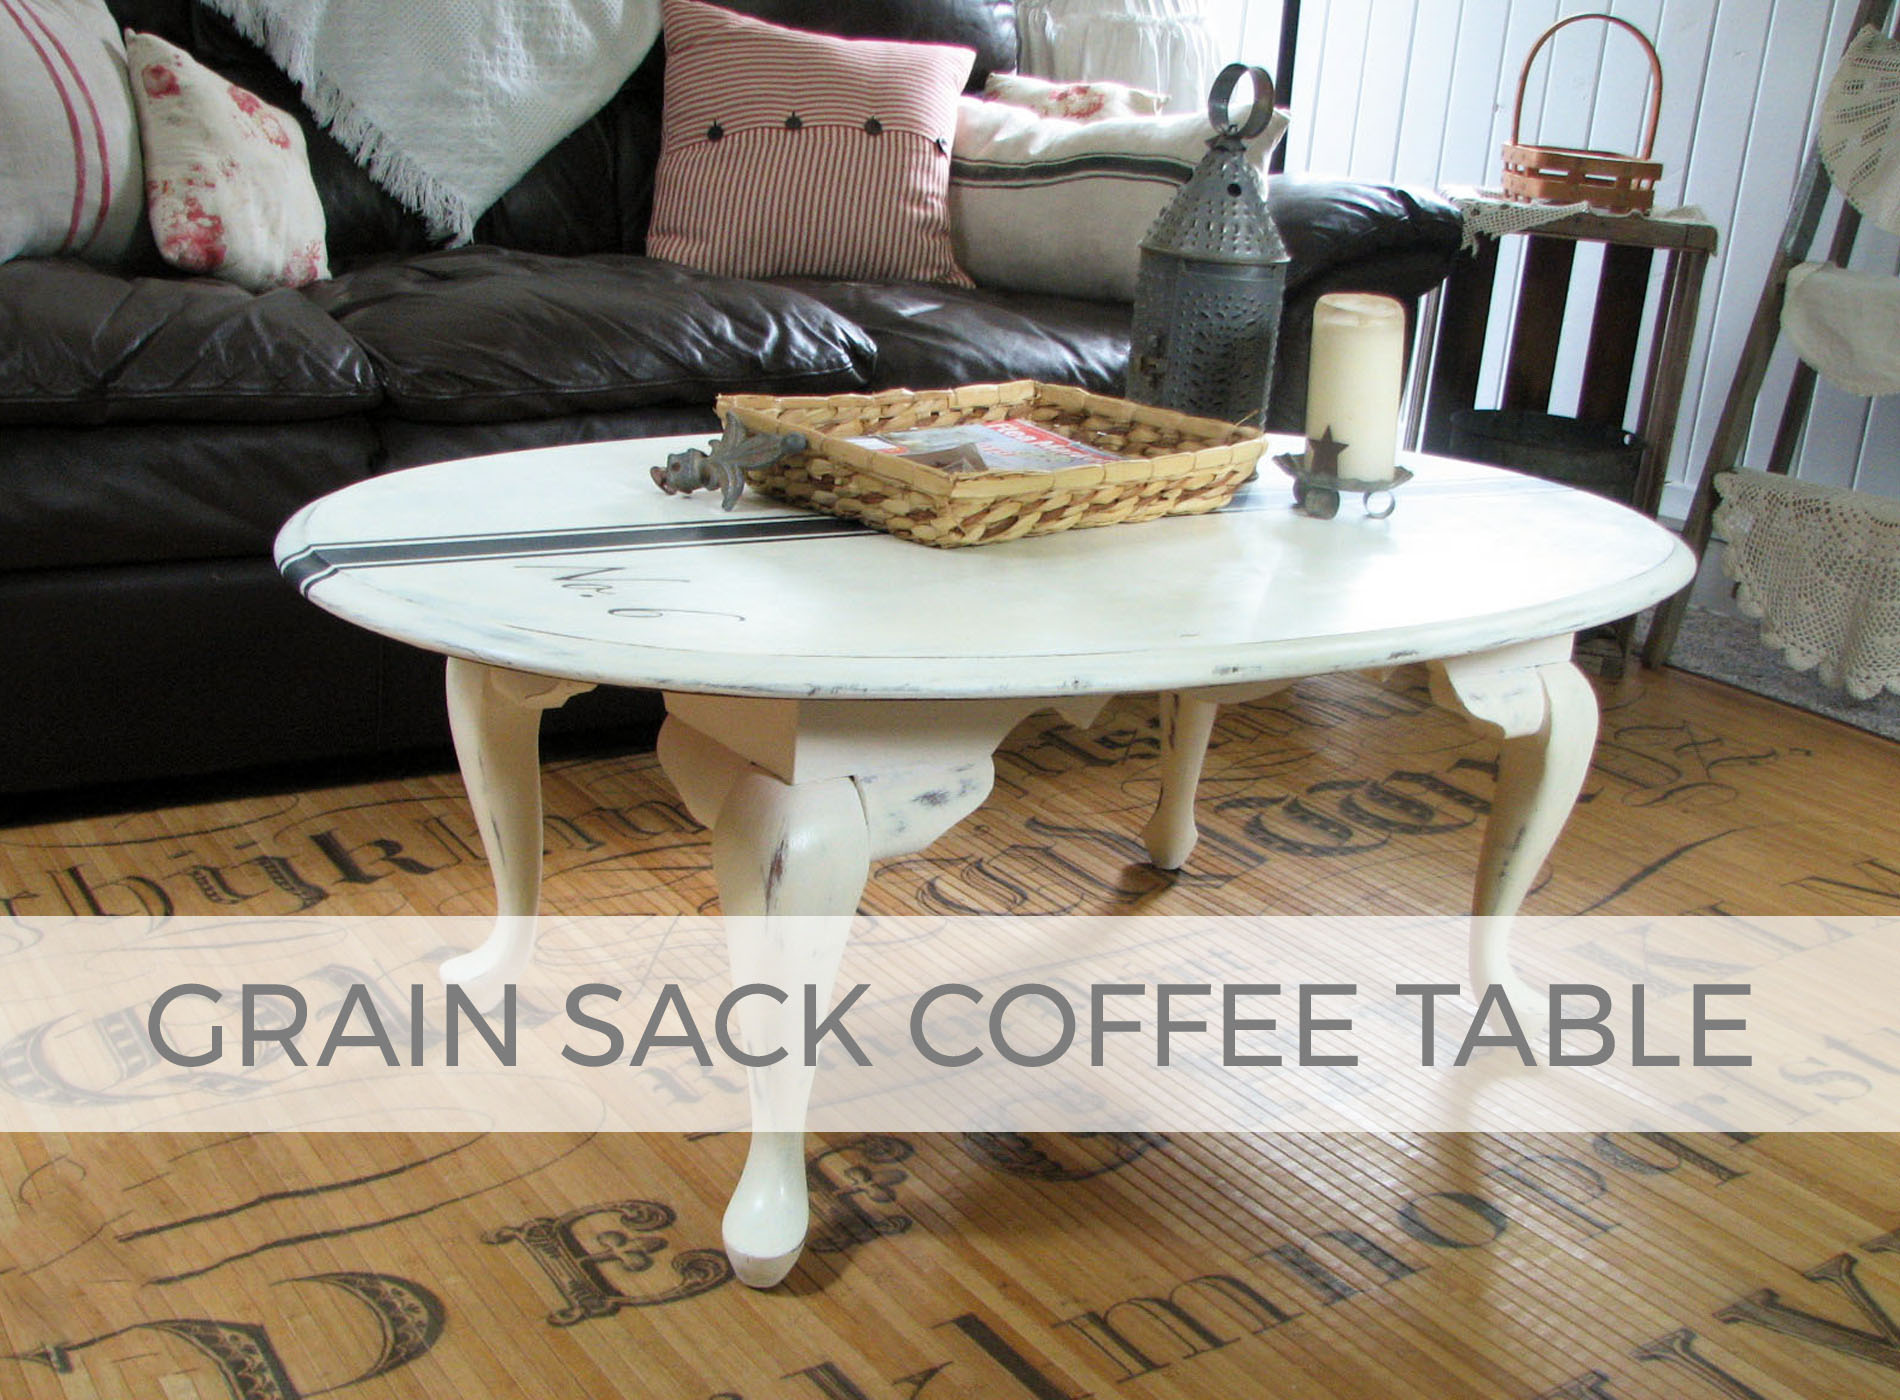 Grain Sack Coffee Table by Larissa of Prodigal Pieces | prodigalpieces.com